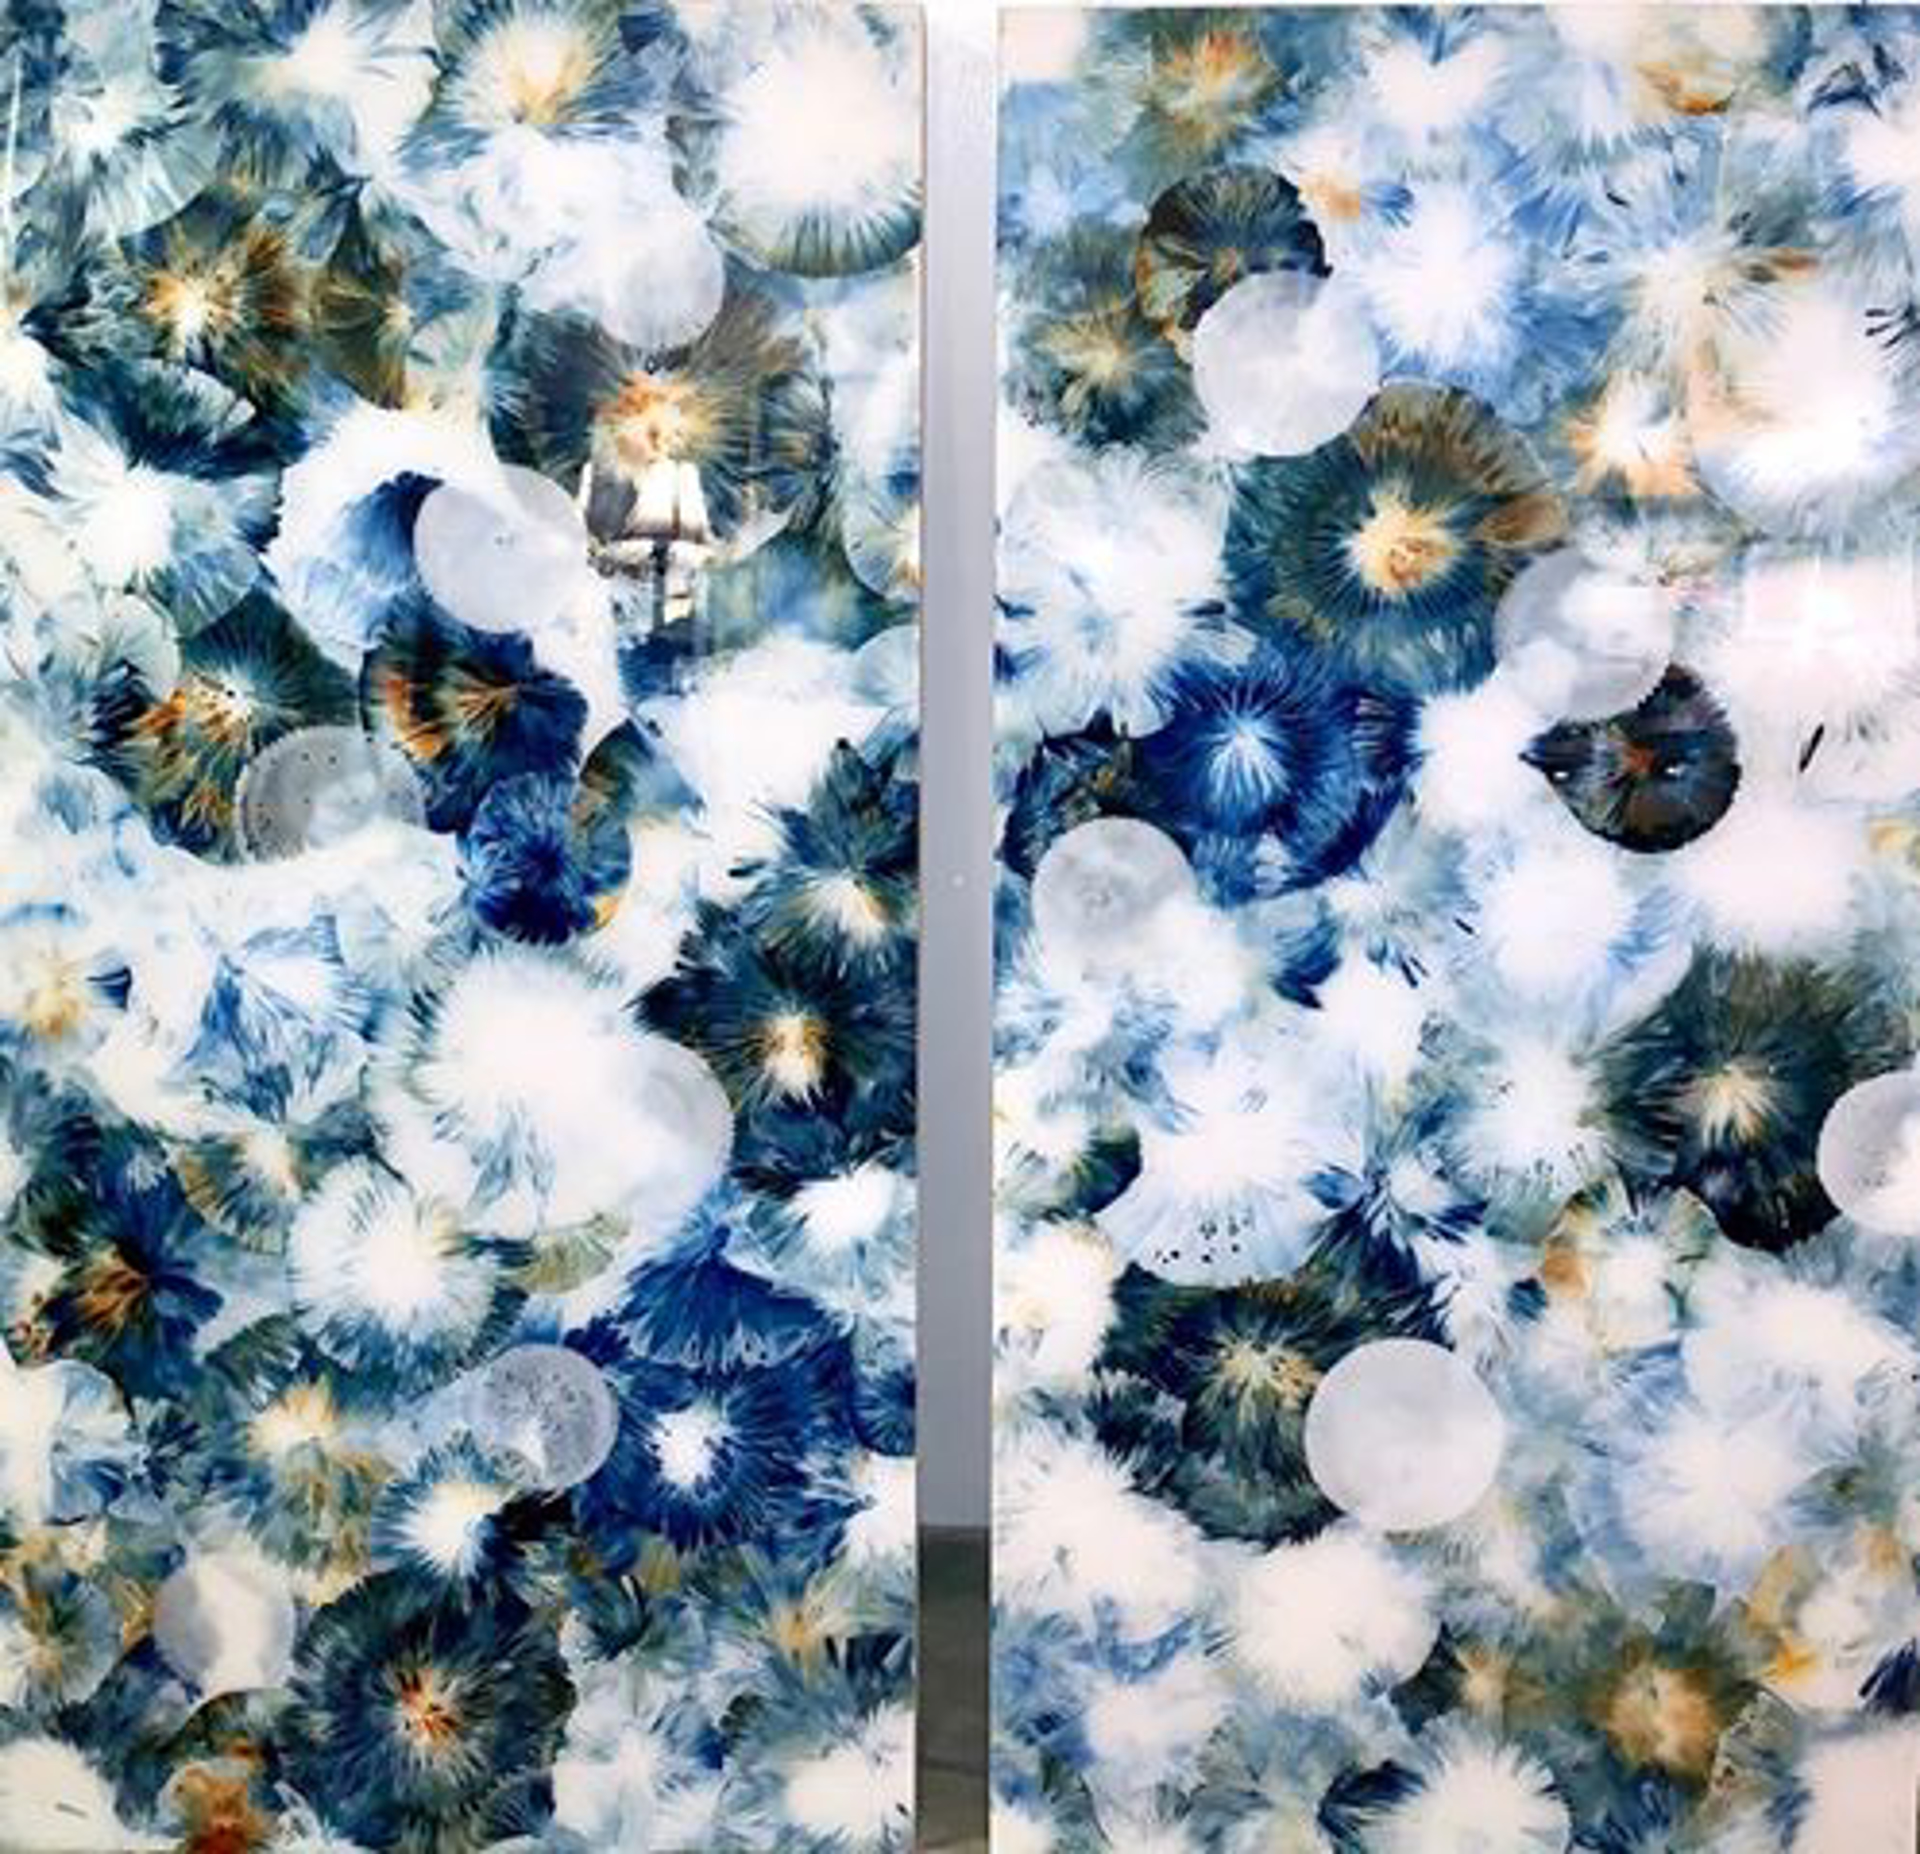 Bloom #12, Right Diptych by Jennifer Glover Riggs